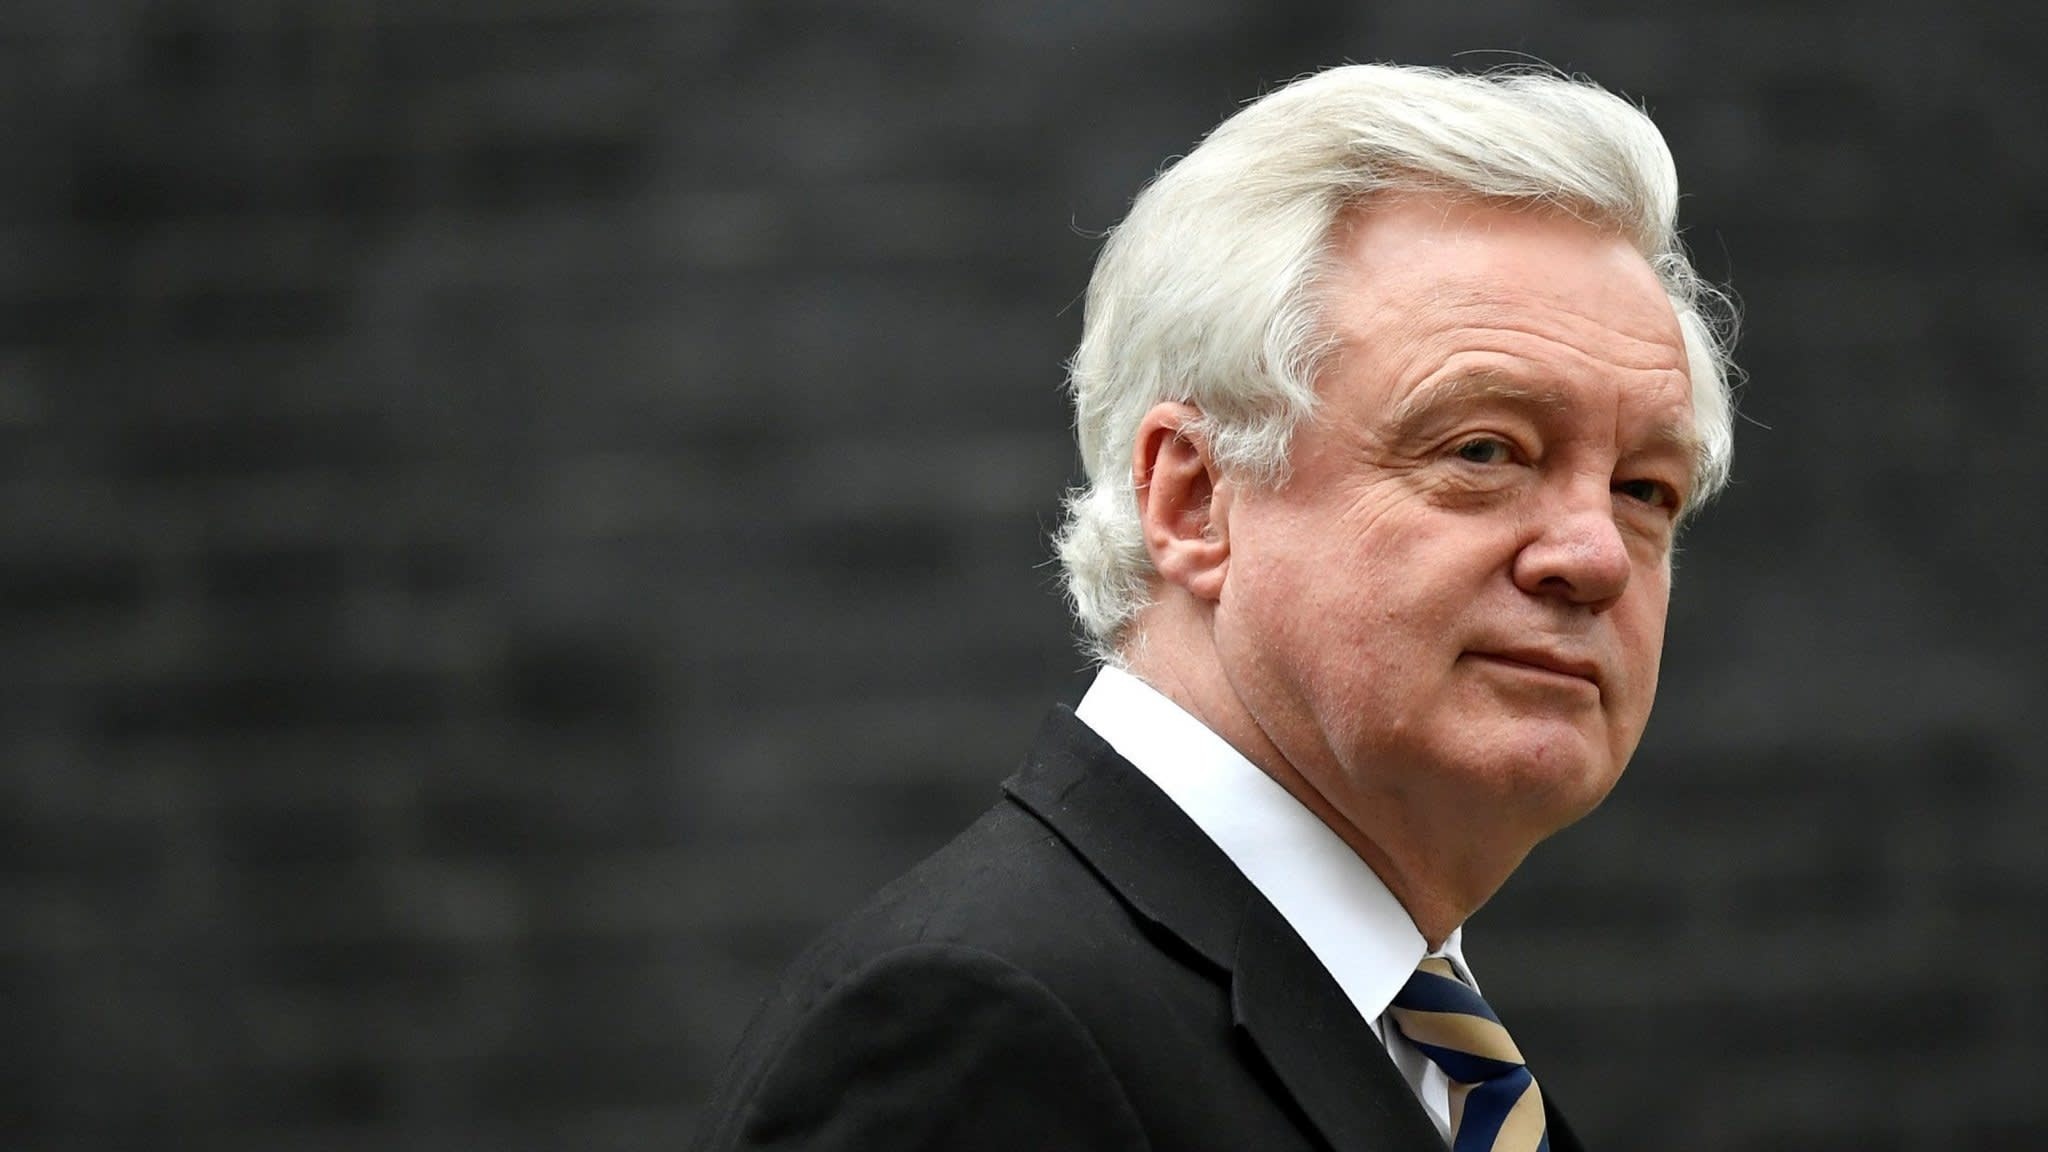 David Davis urges Theresa May to ditch Chequers plan for Brexit